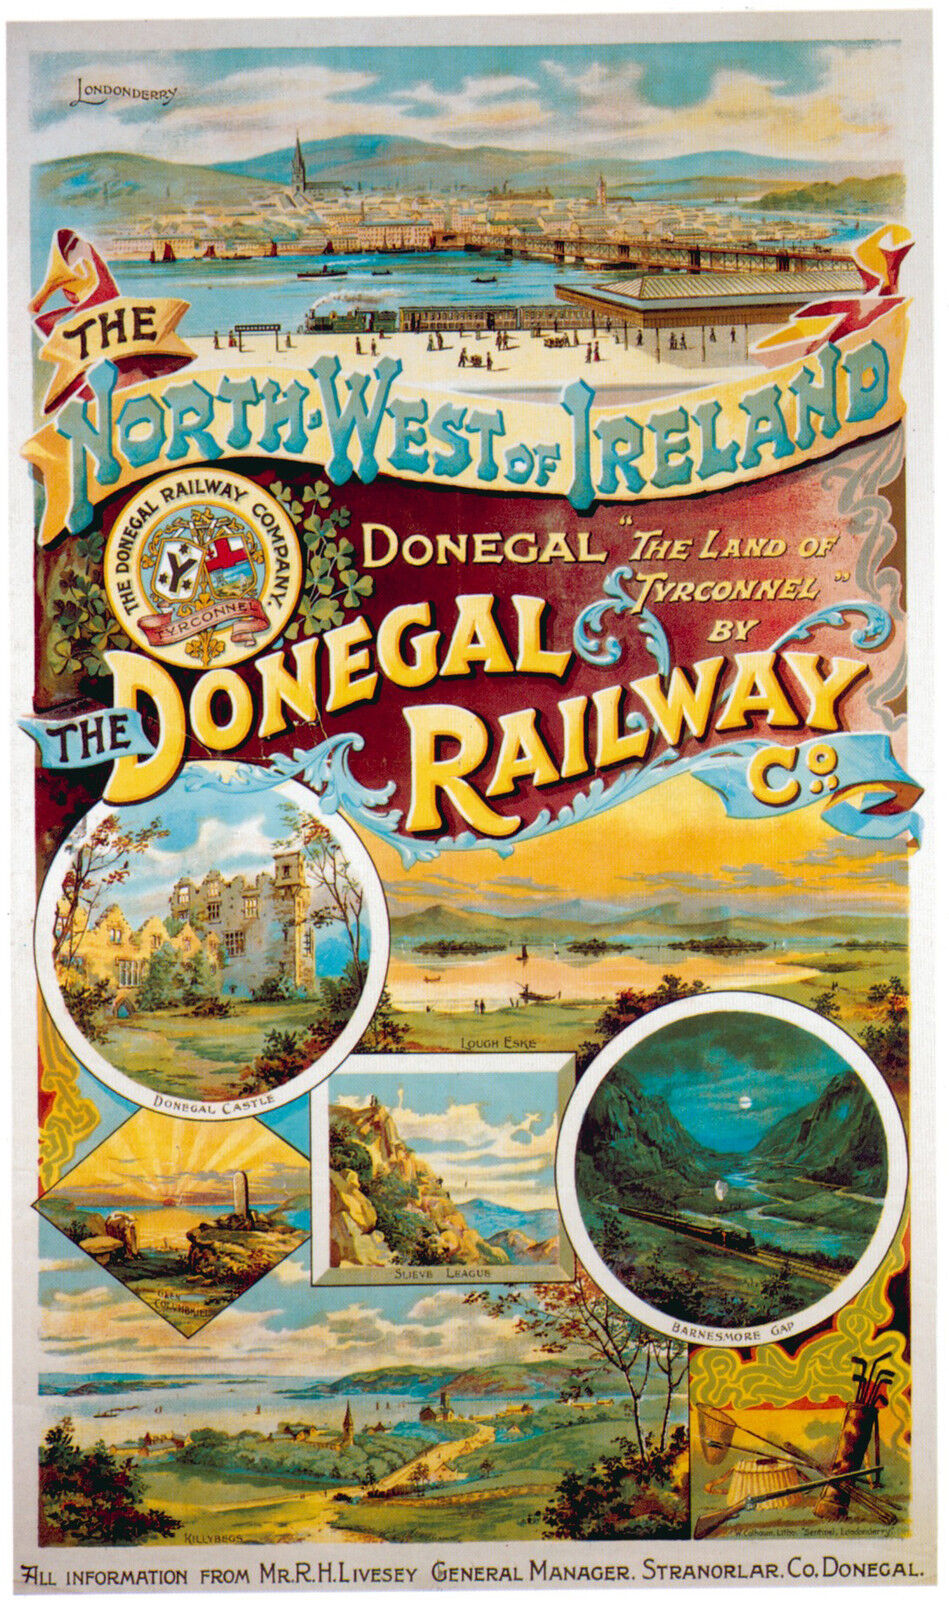 s l1600 - The County Donegal Railways